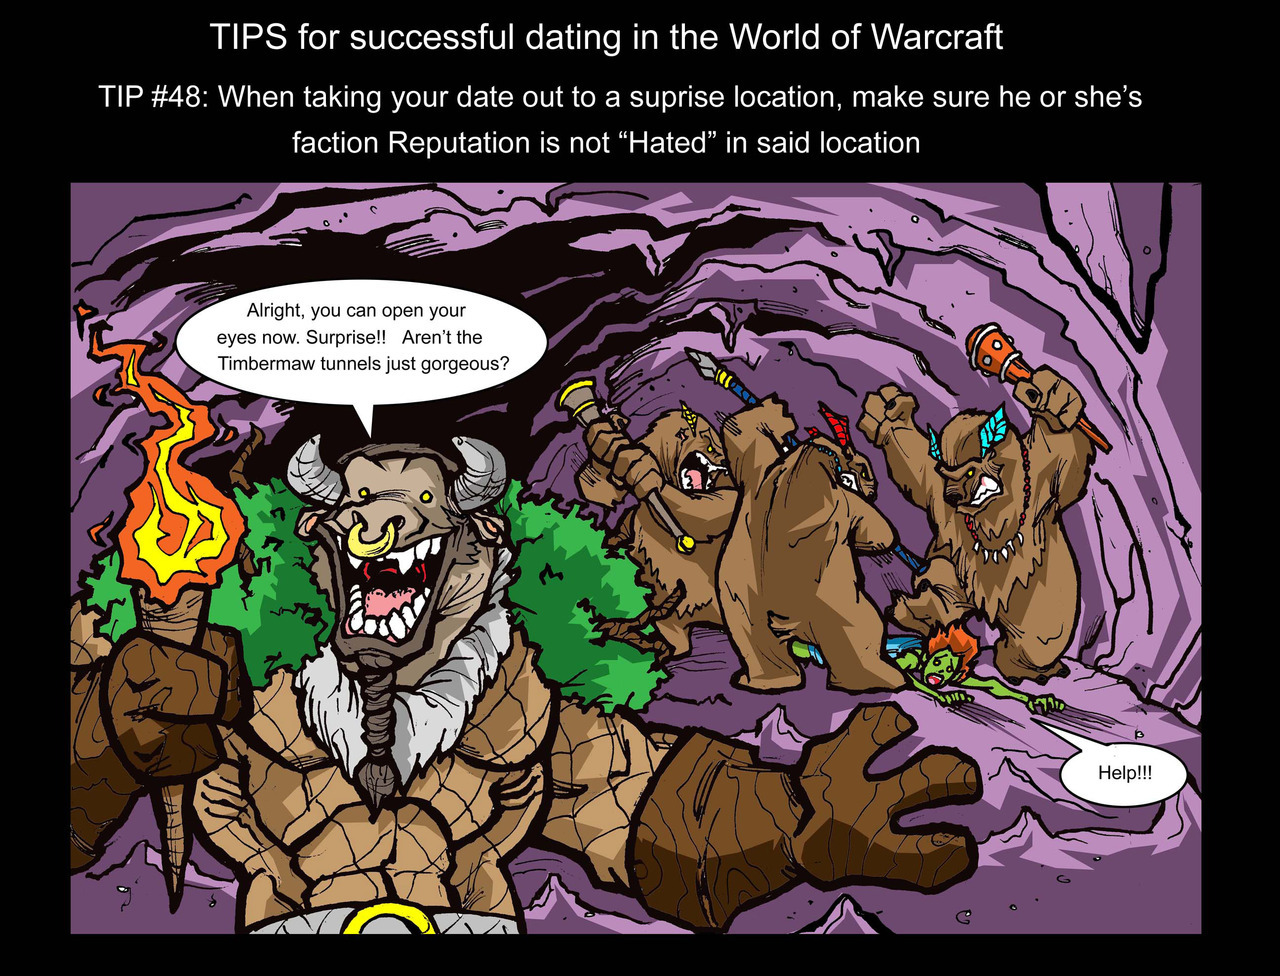 Tips for successful dating in WoW - #48 (Good thing this doesn't apply anymore. lol)